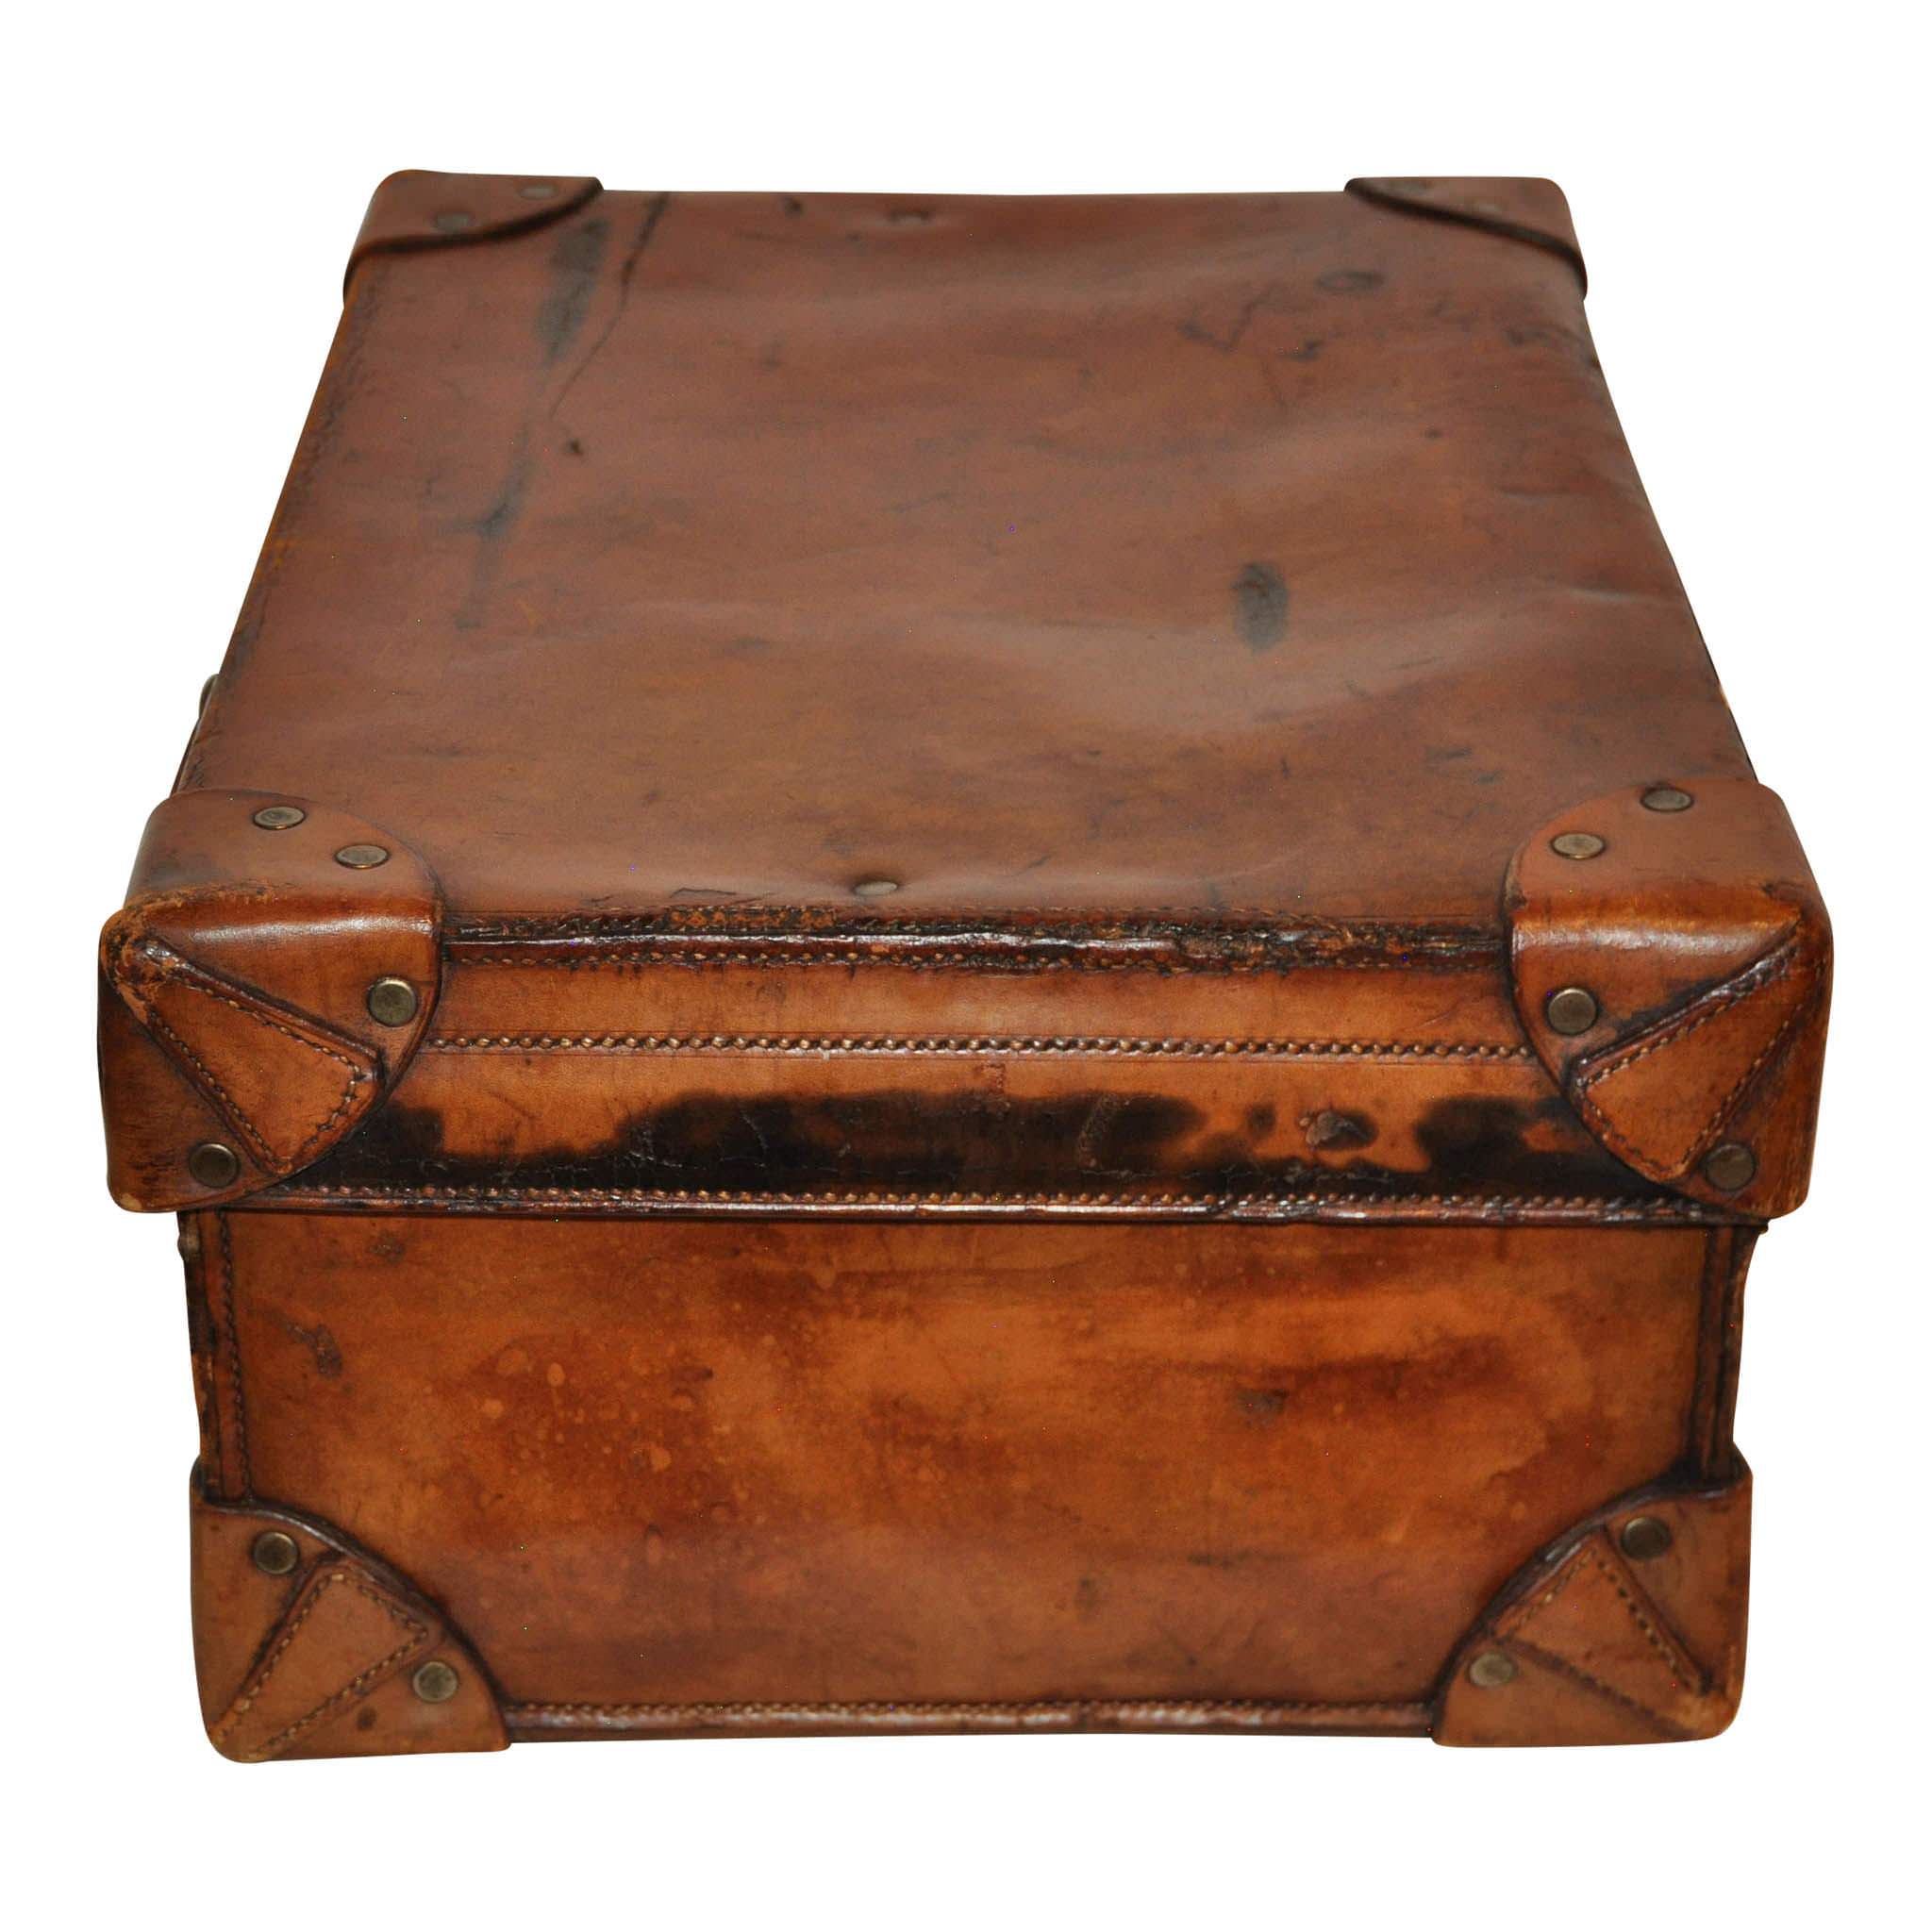 Men's Leather Toiletry Travel Valise